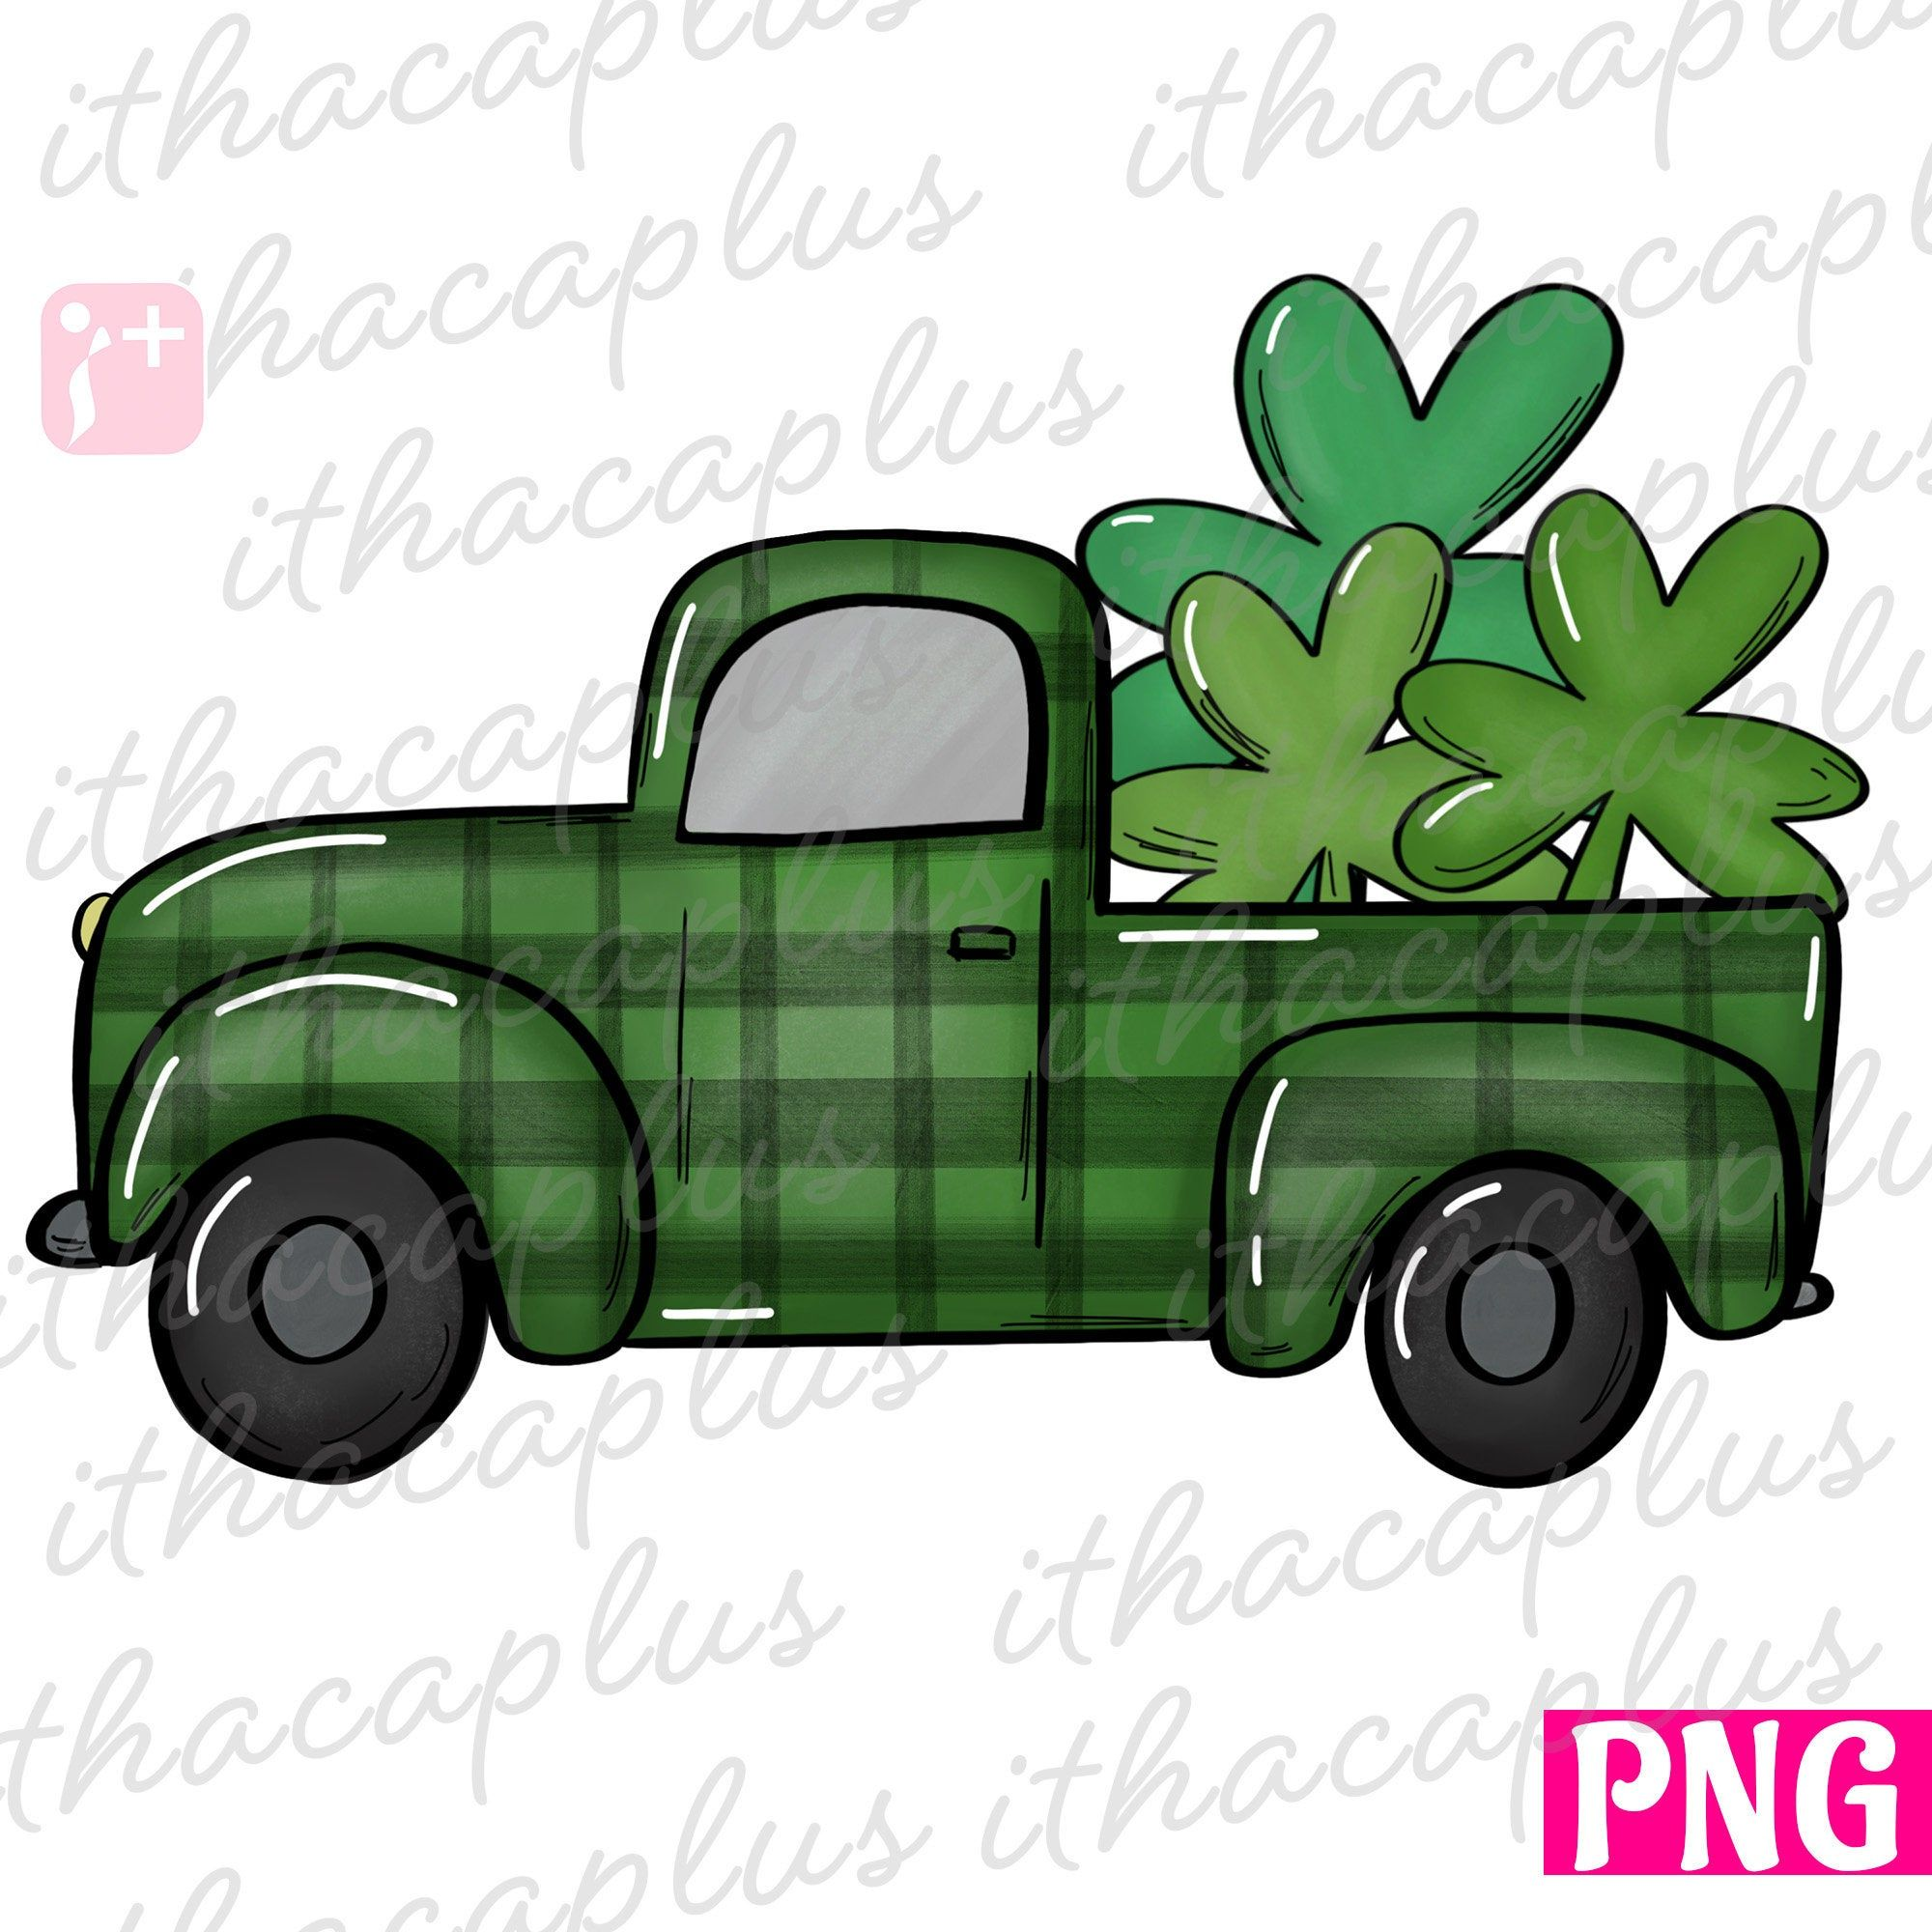 St Patrick S Day Png St Patrick S Truck Png Etsy In 2021 St Patricks Day Wallpaper St Patricks Day Cards St Patricks Day Pictures